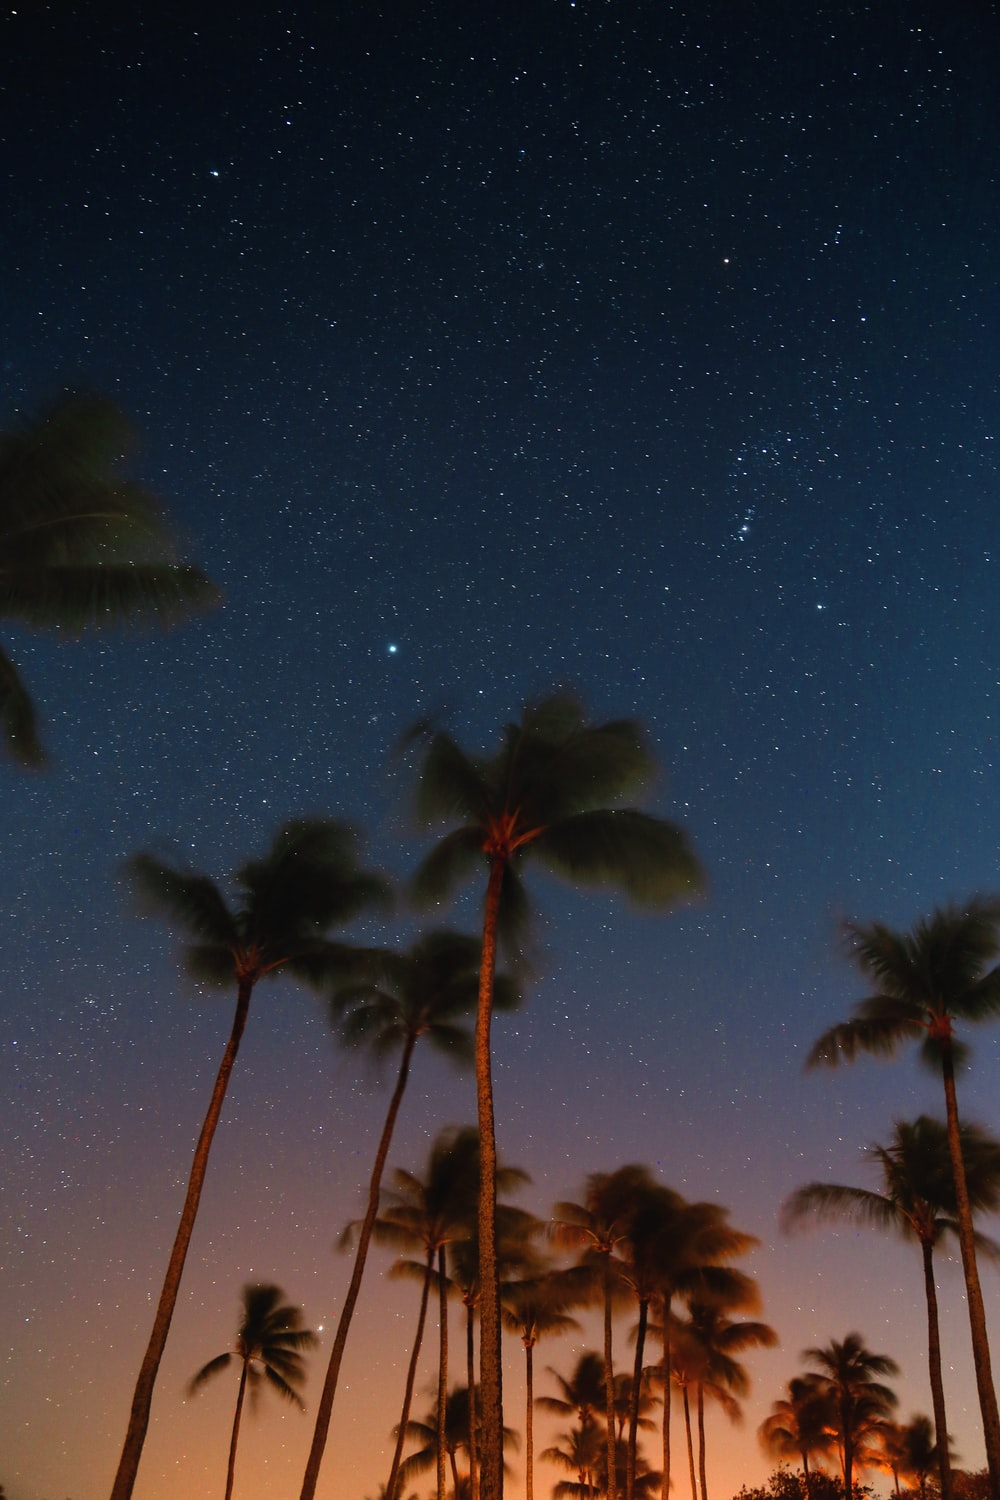 low angle photography of coconut trees at nighttime